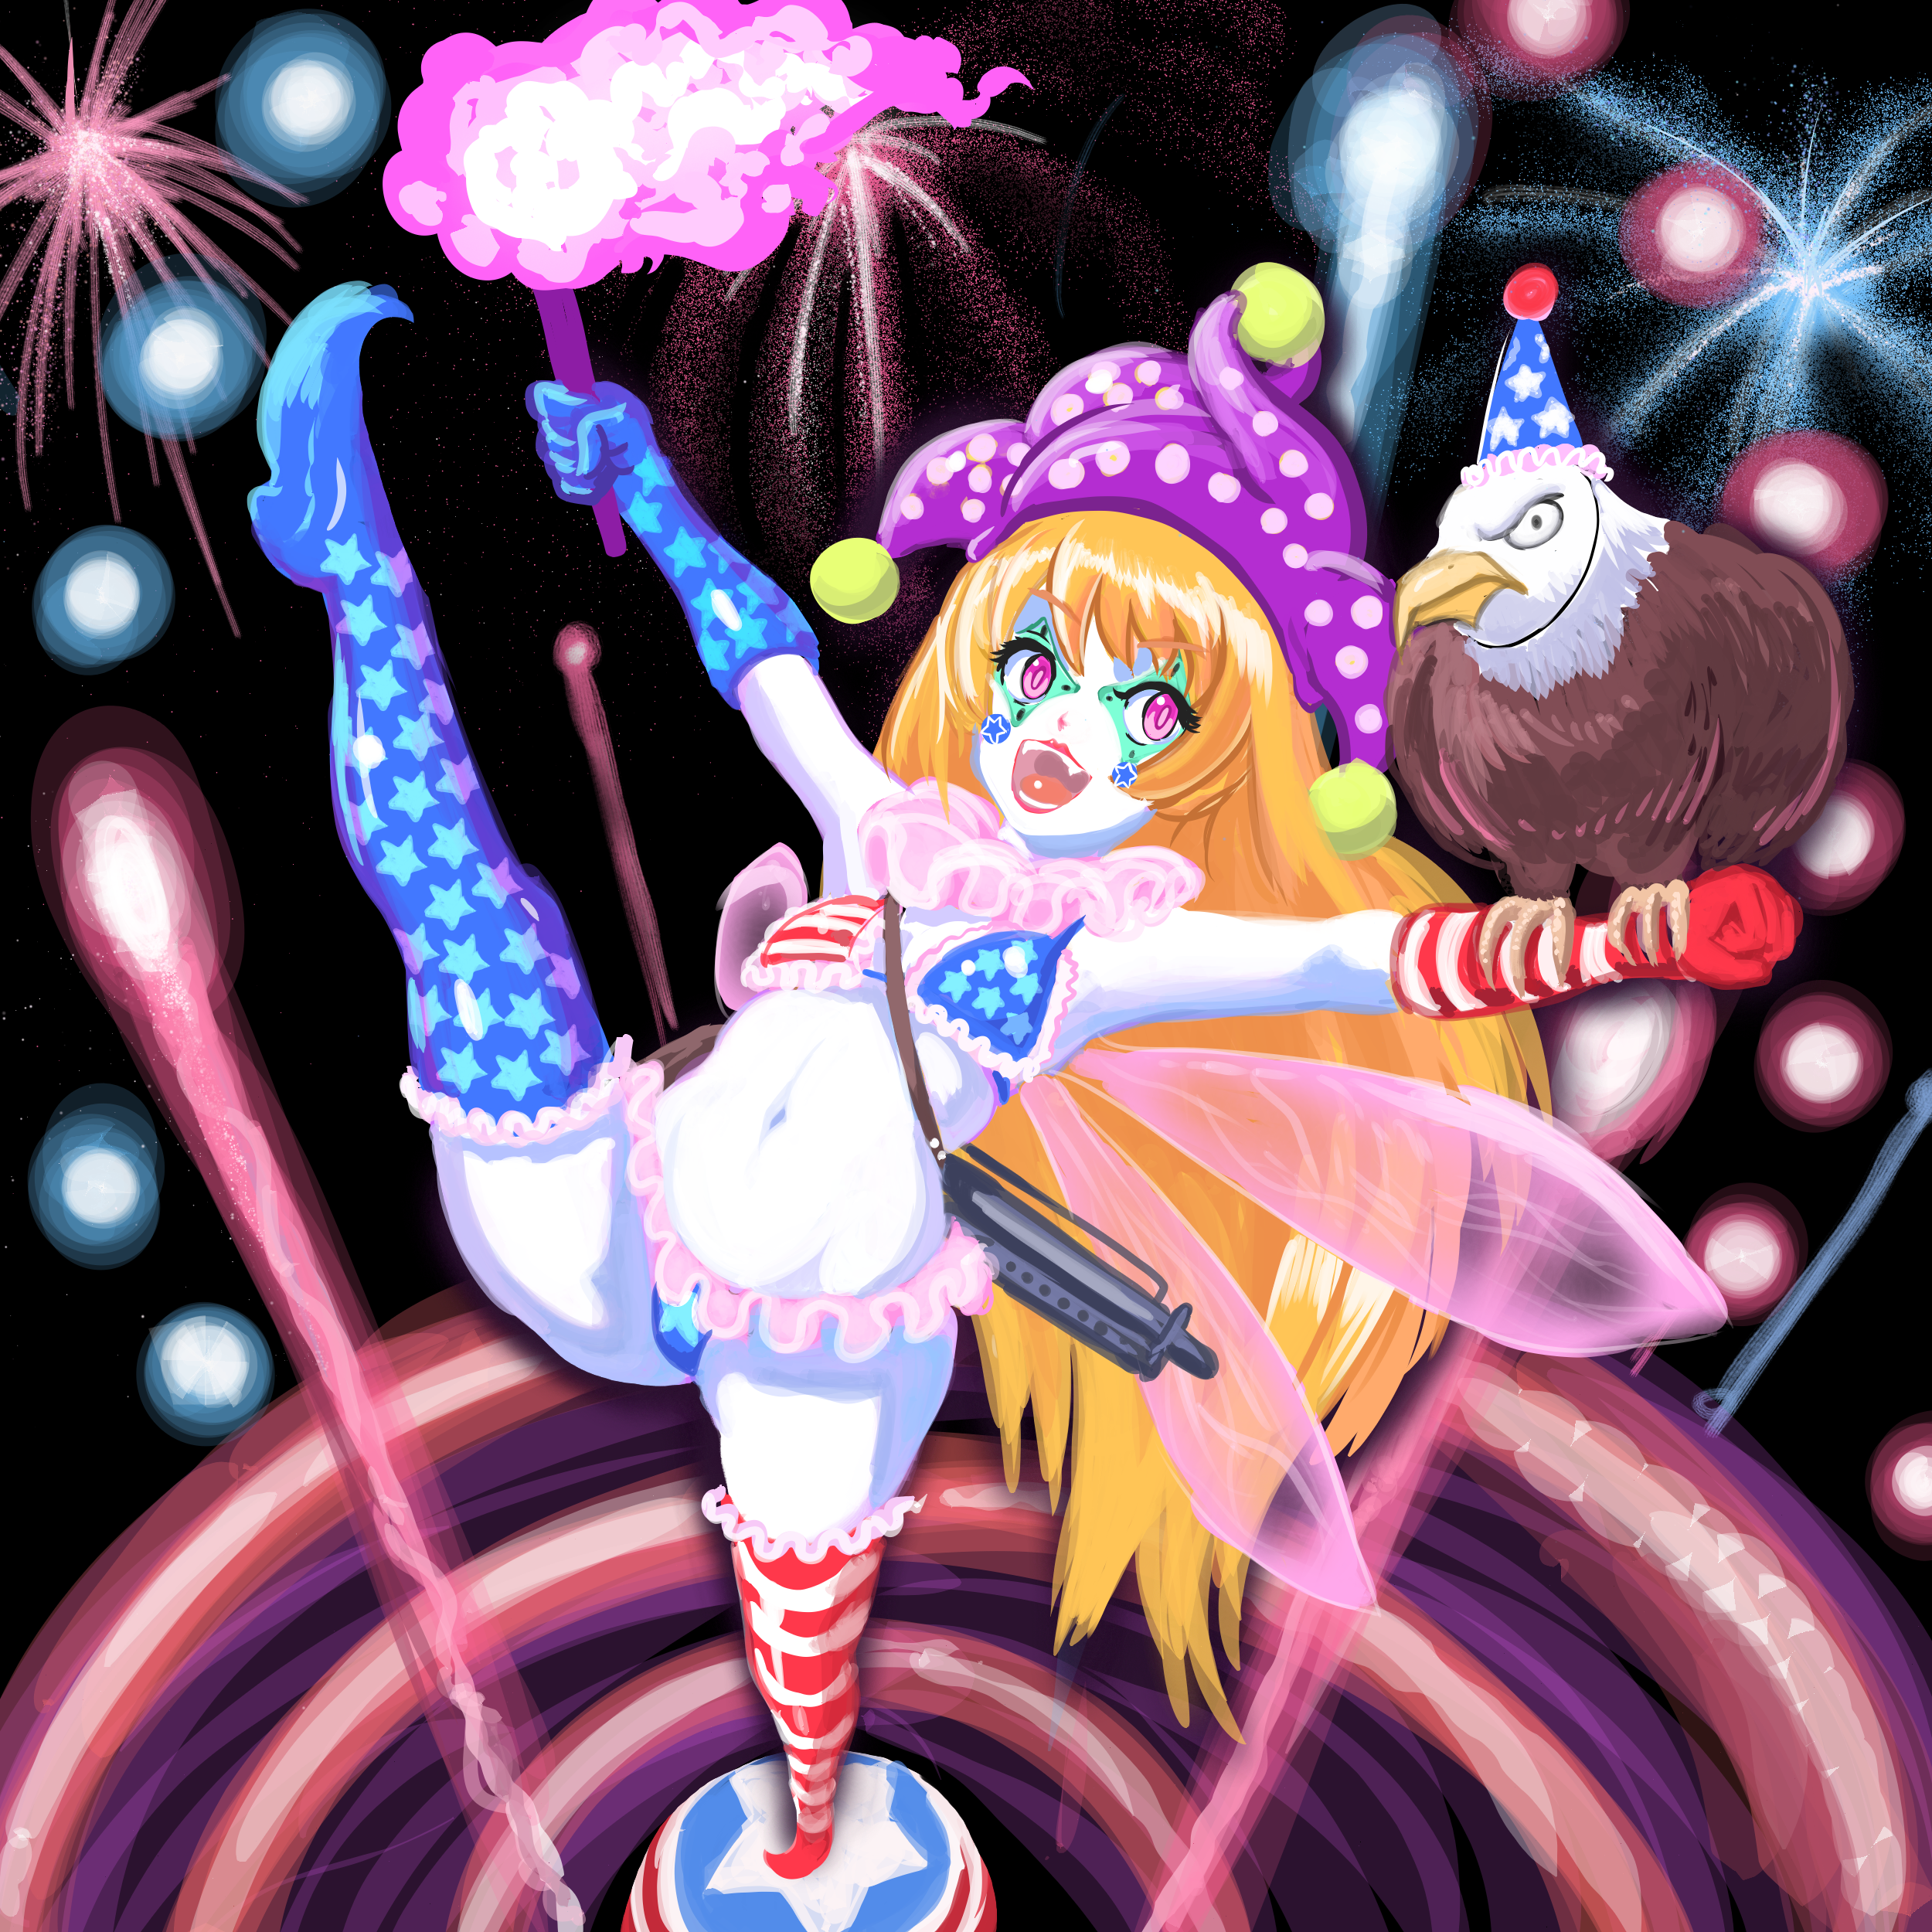 Happy 4th of July from Clownpiece